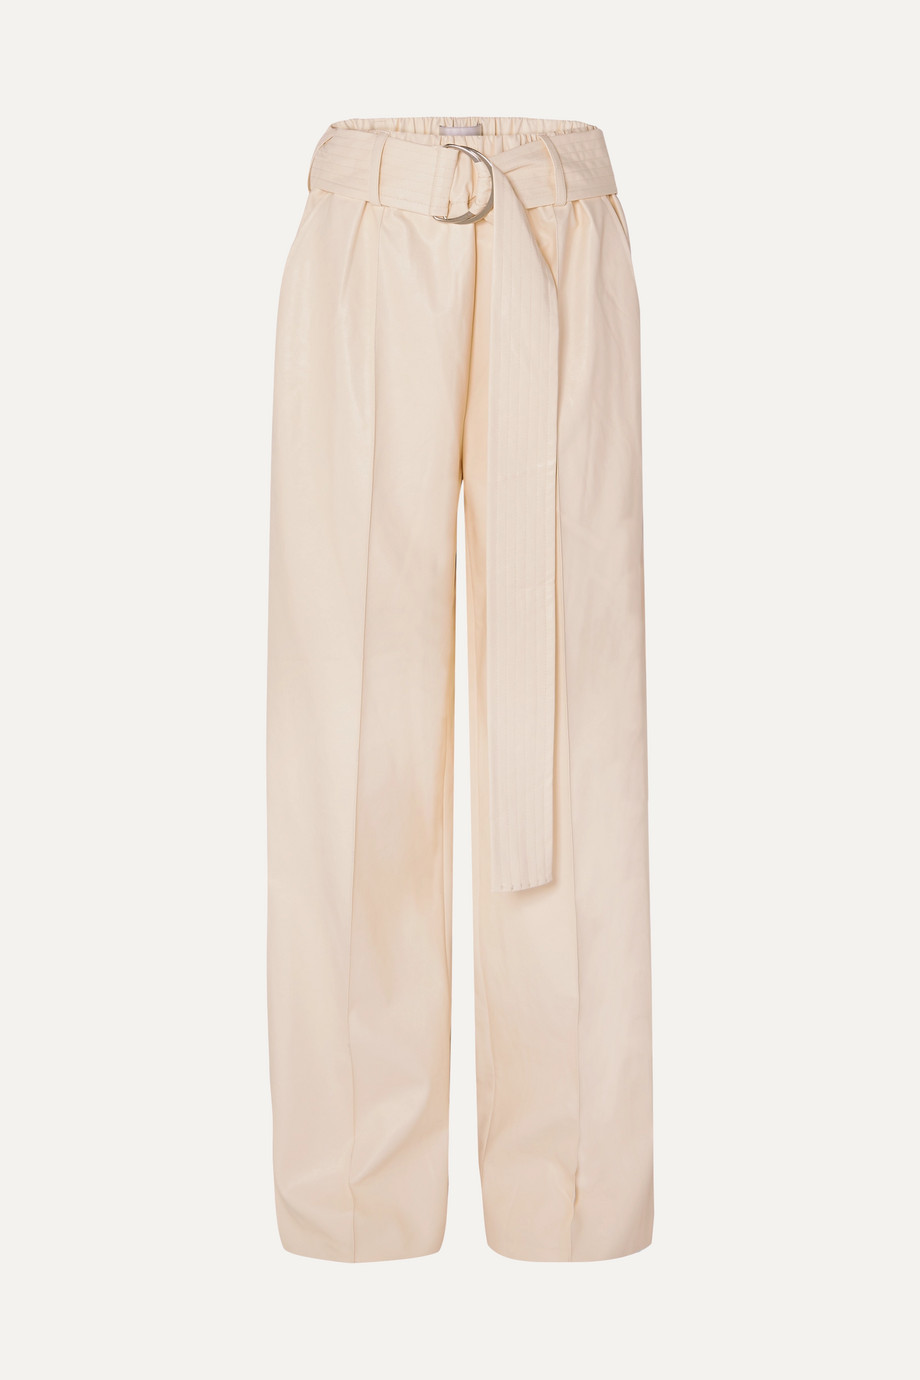 Stand Studio Alaina belted faux leather wide-leg pants